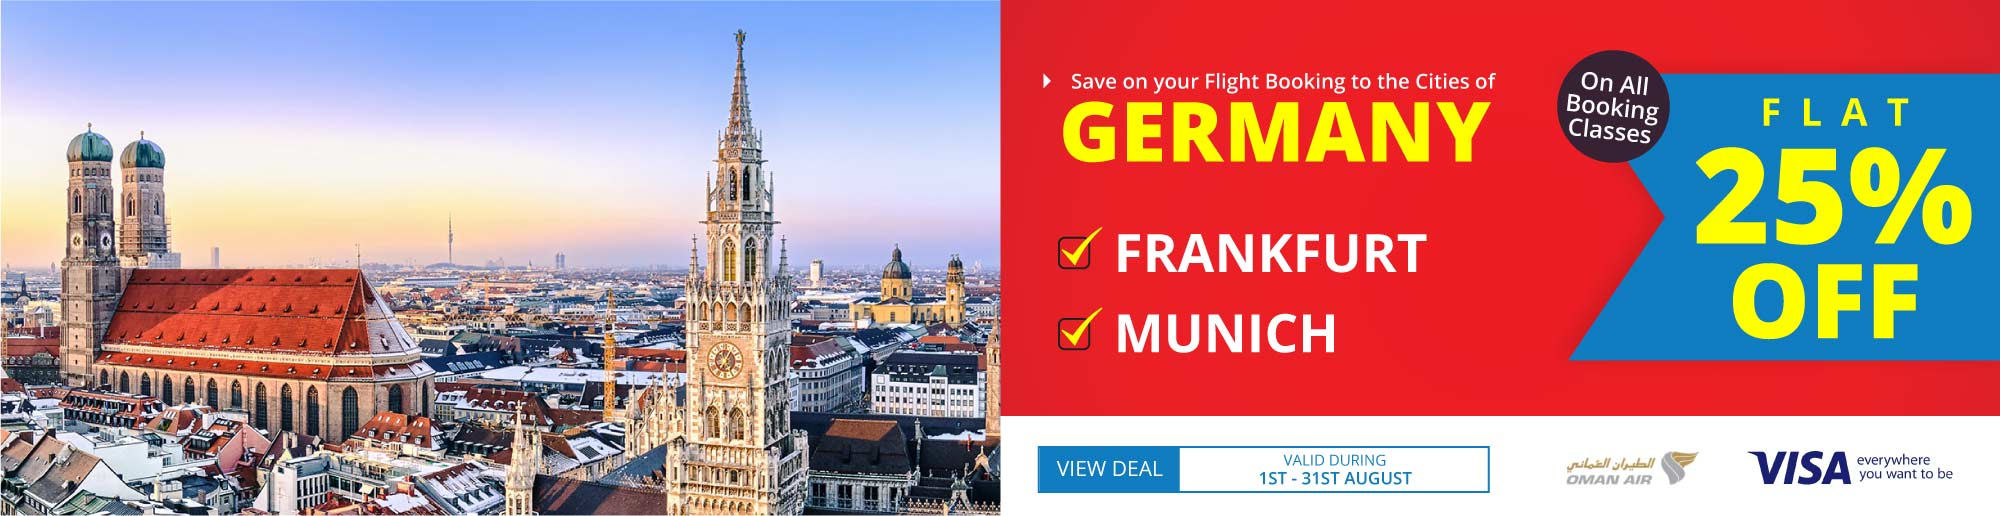 Get 25% Off On Flight Bookings to Germany on Oman Air!